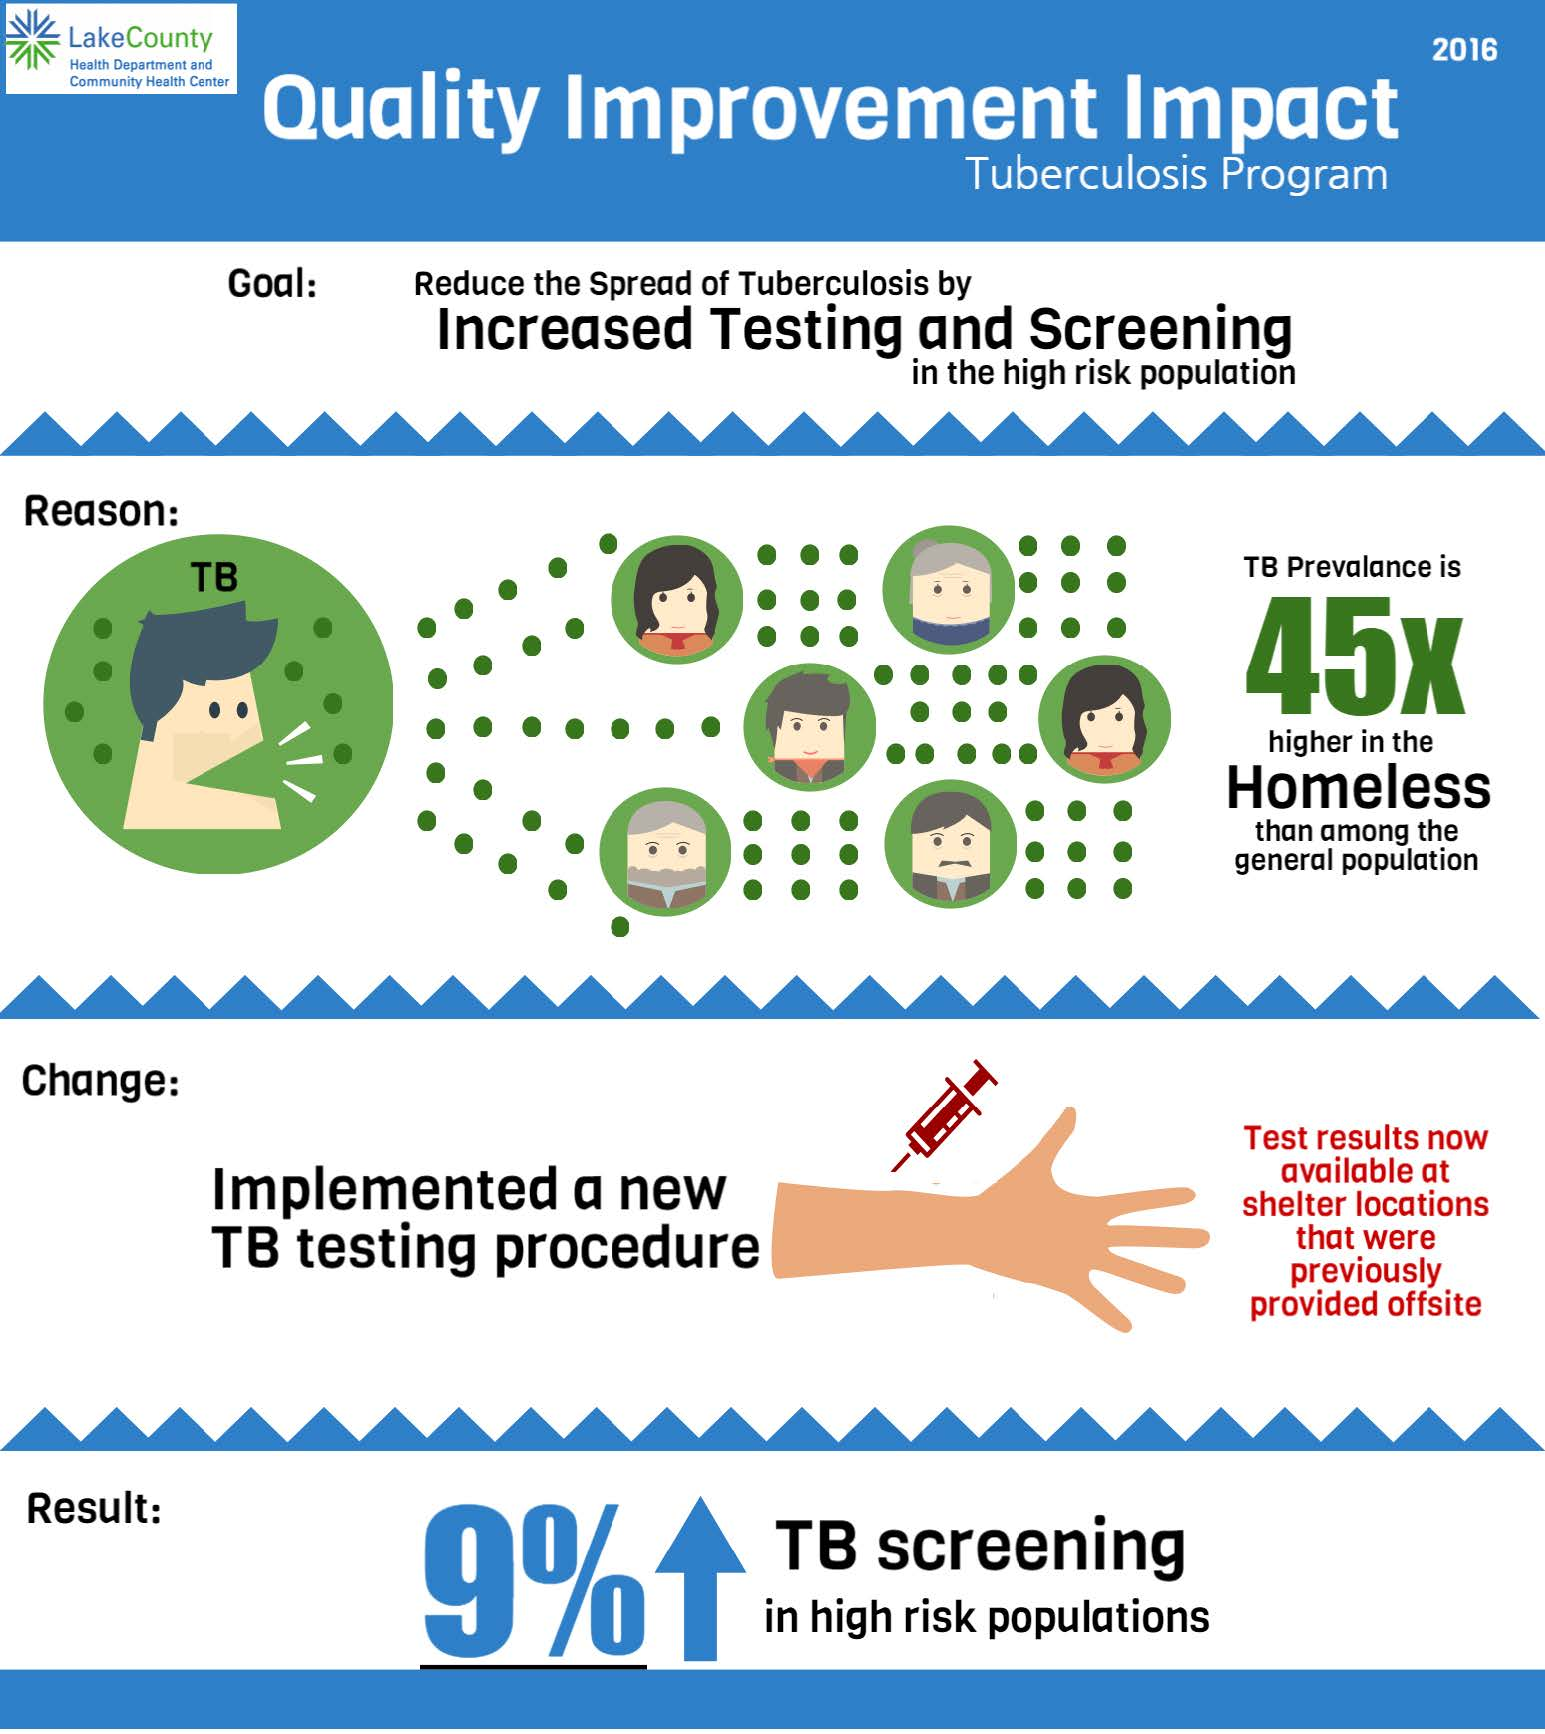 QI Impact TB - Increase Testing and Screening for TB